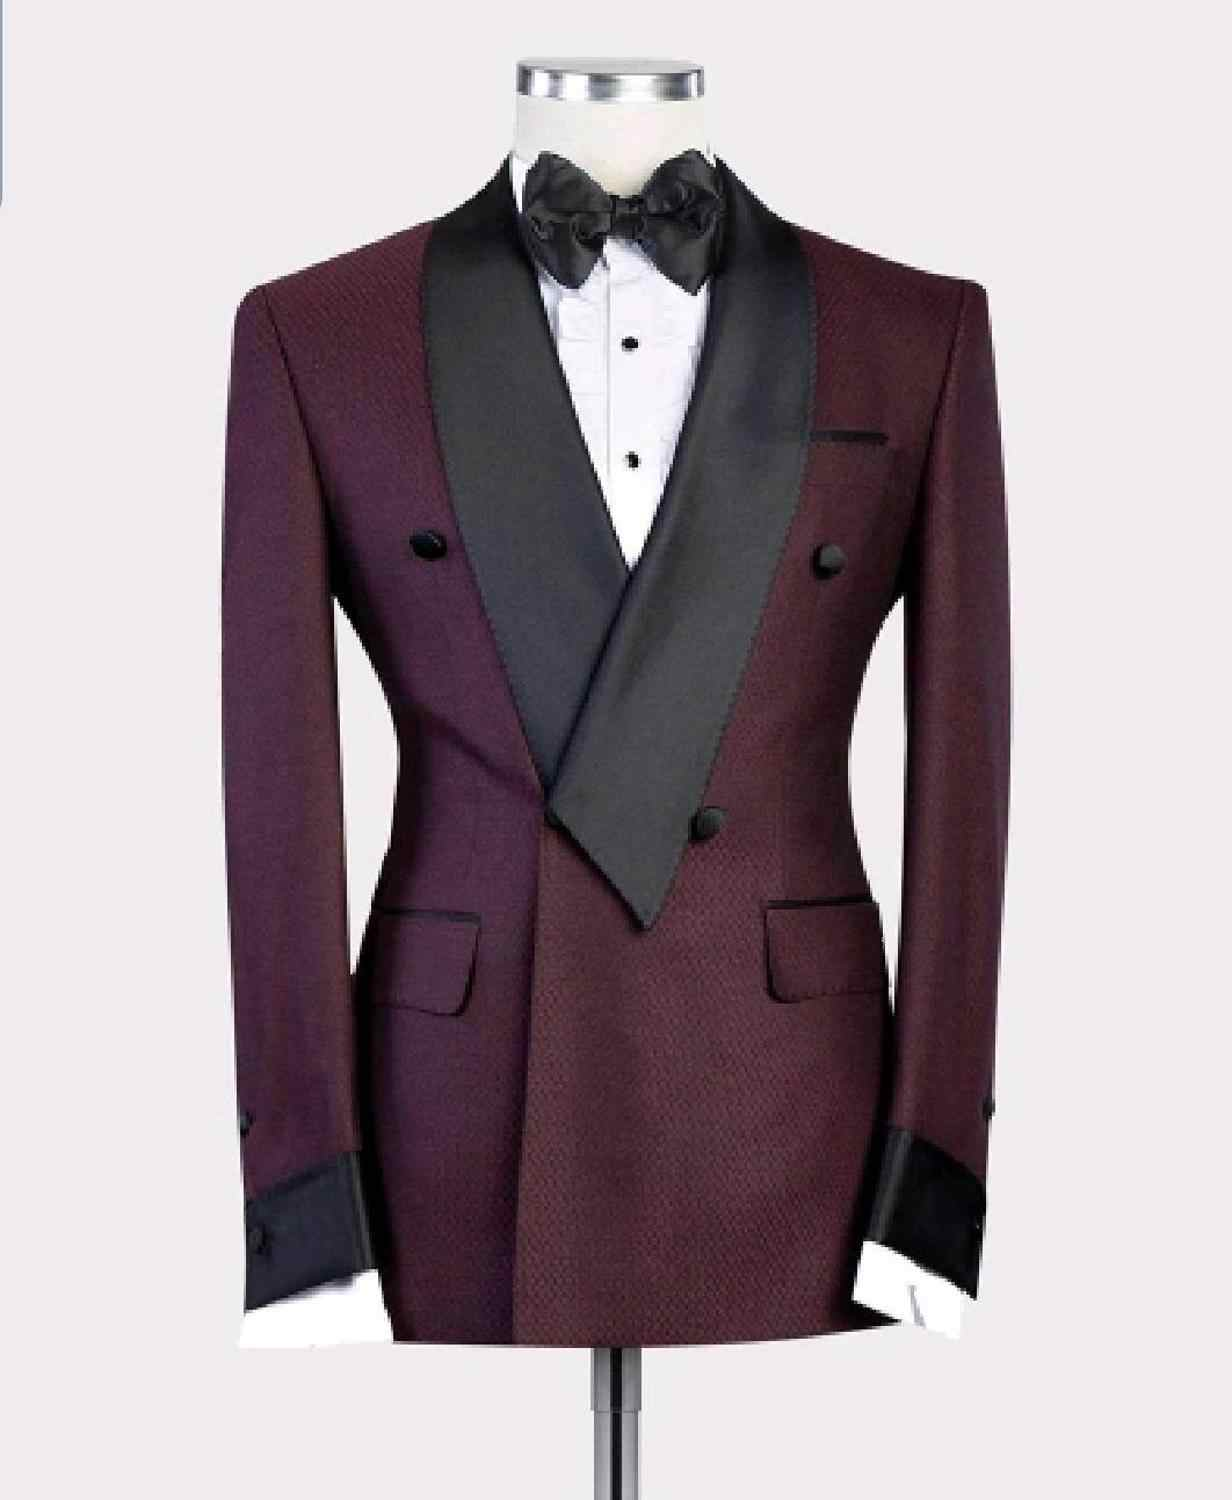 2020 New Burgundy Red With Black Lapel Men's Slim Fit Formal Suits Custom Made 2 Pieces Wedding Tuxedos Suits Jacket Pants